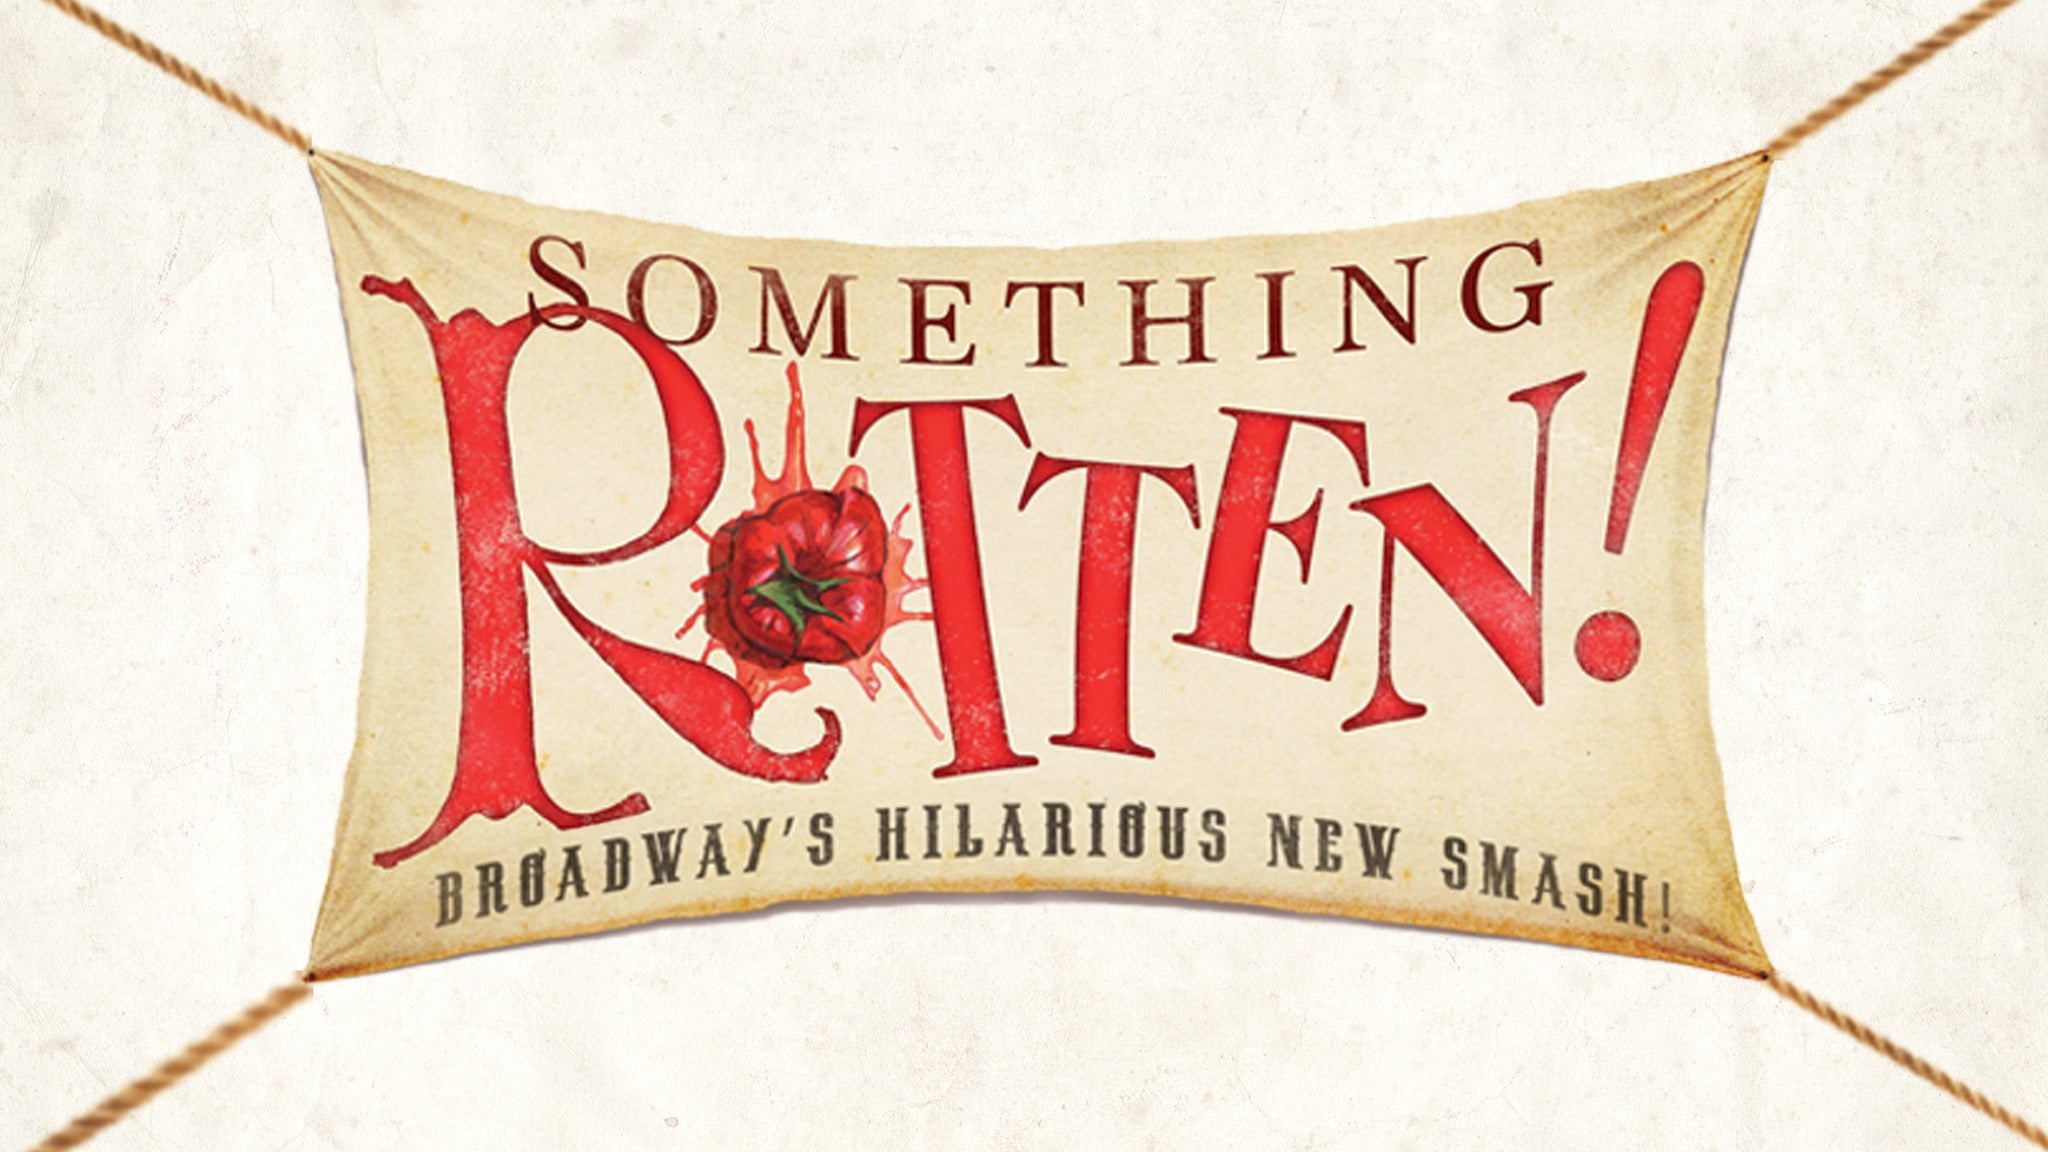 Marriott Theatre Presents: Something Rotten! - Lincolnshire, IL 60069